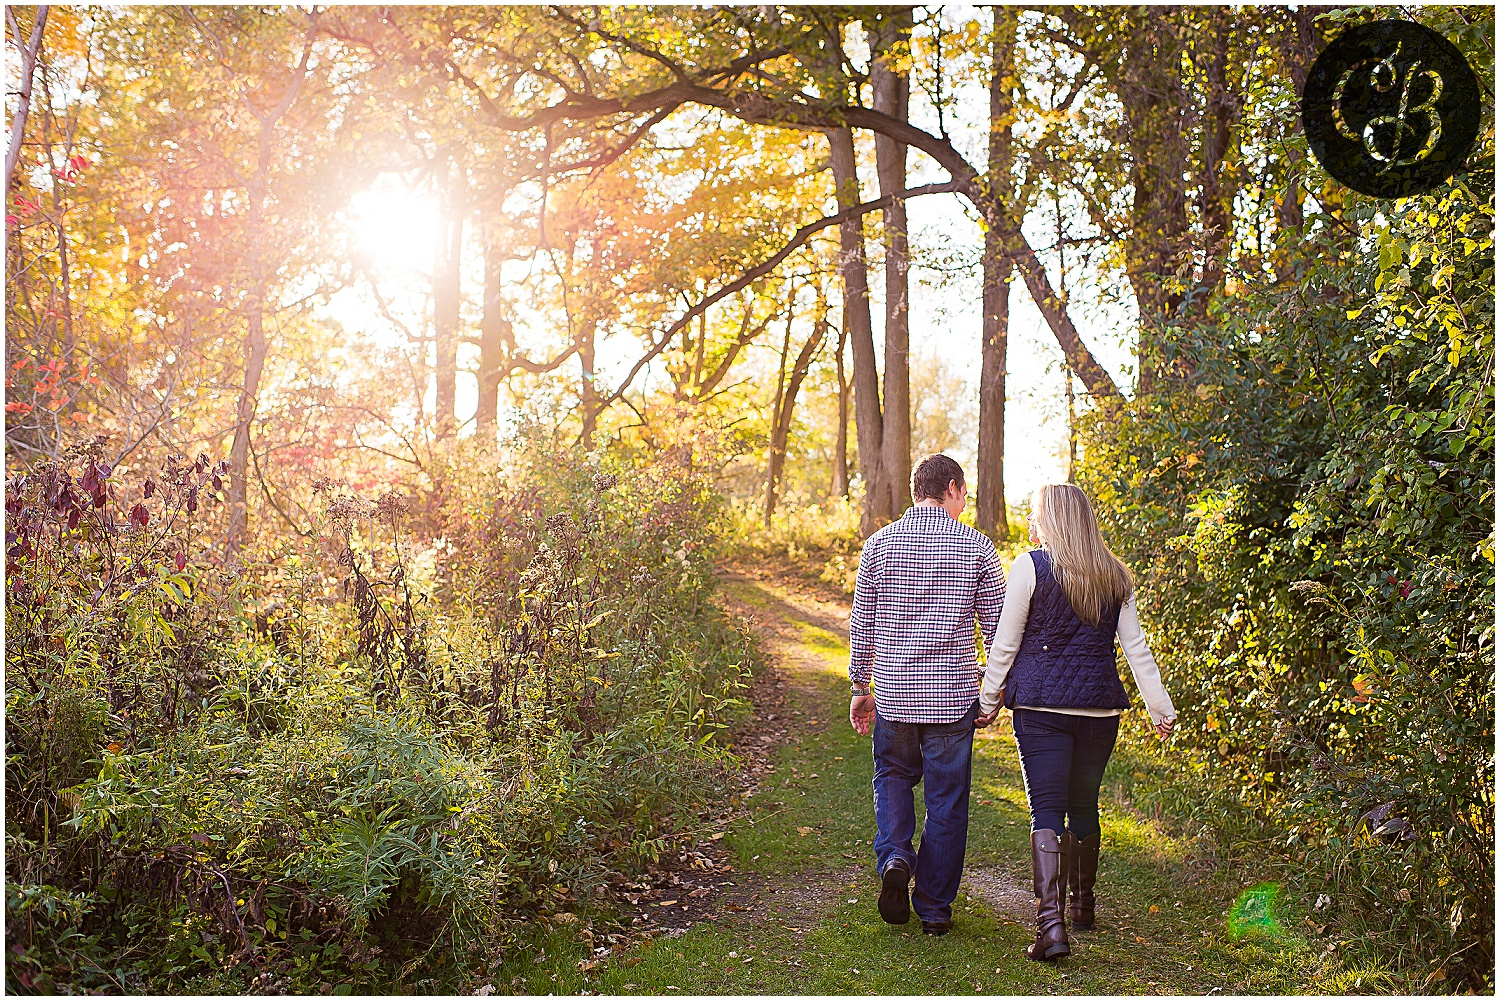 Fall-Orchard-Engagement-Photography_0079.jpg